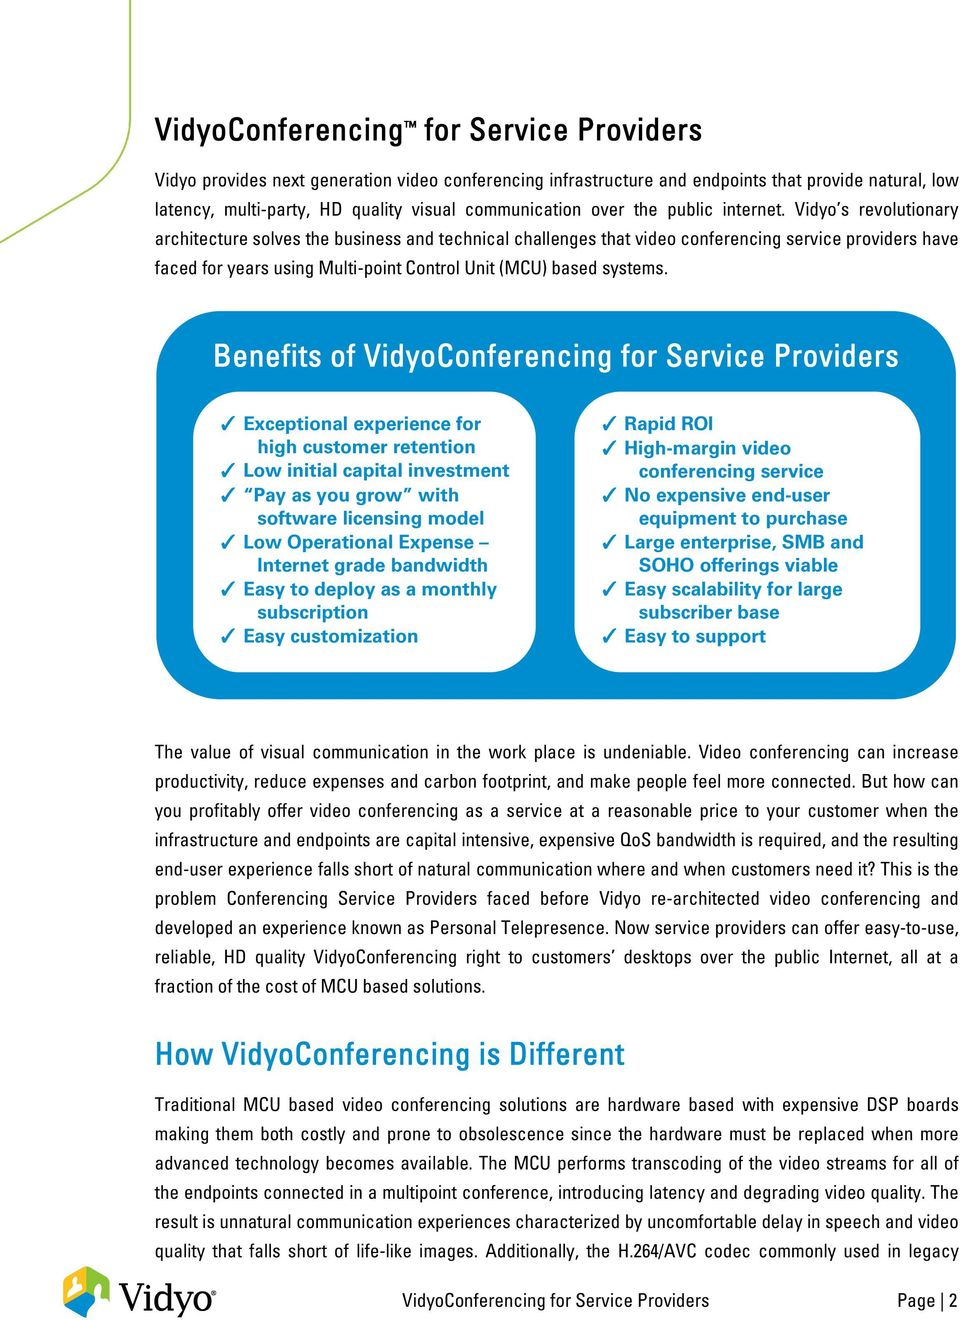 Vidyo s revolutionary architecture solves the business and technical challenges that video conferencing service providers have faced for years using Multi-point Control Unit (MCU) based systems.